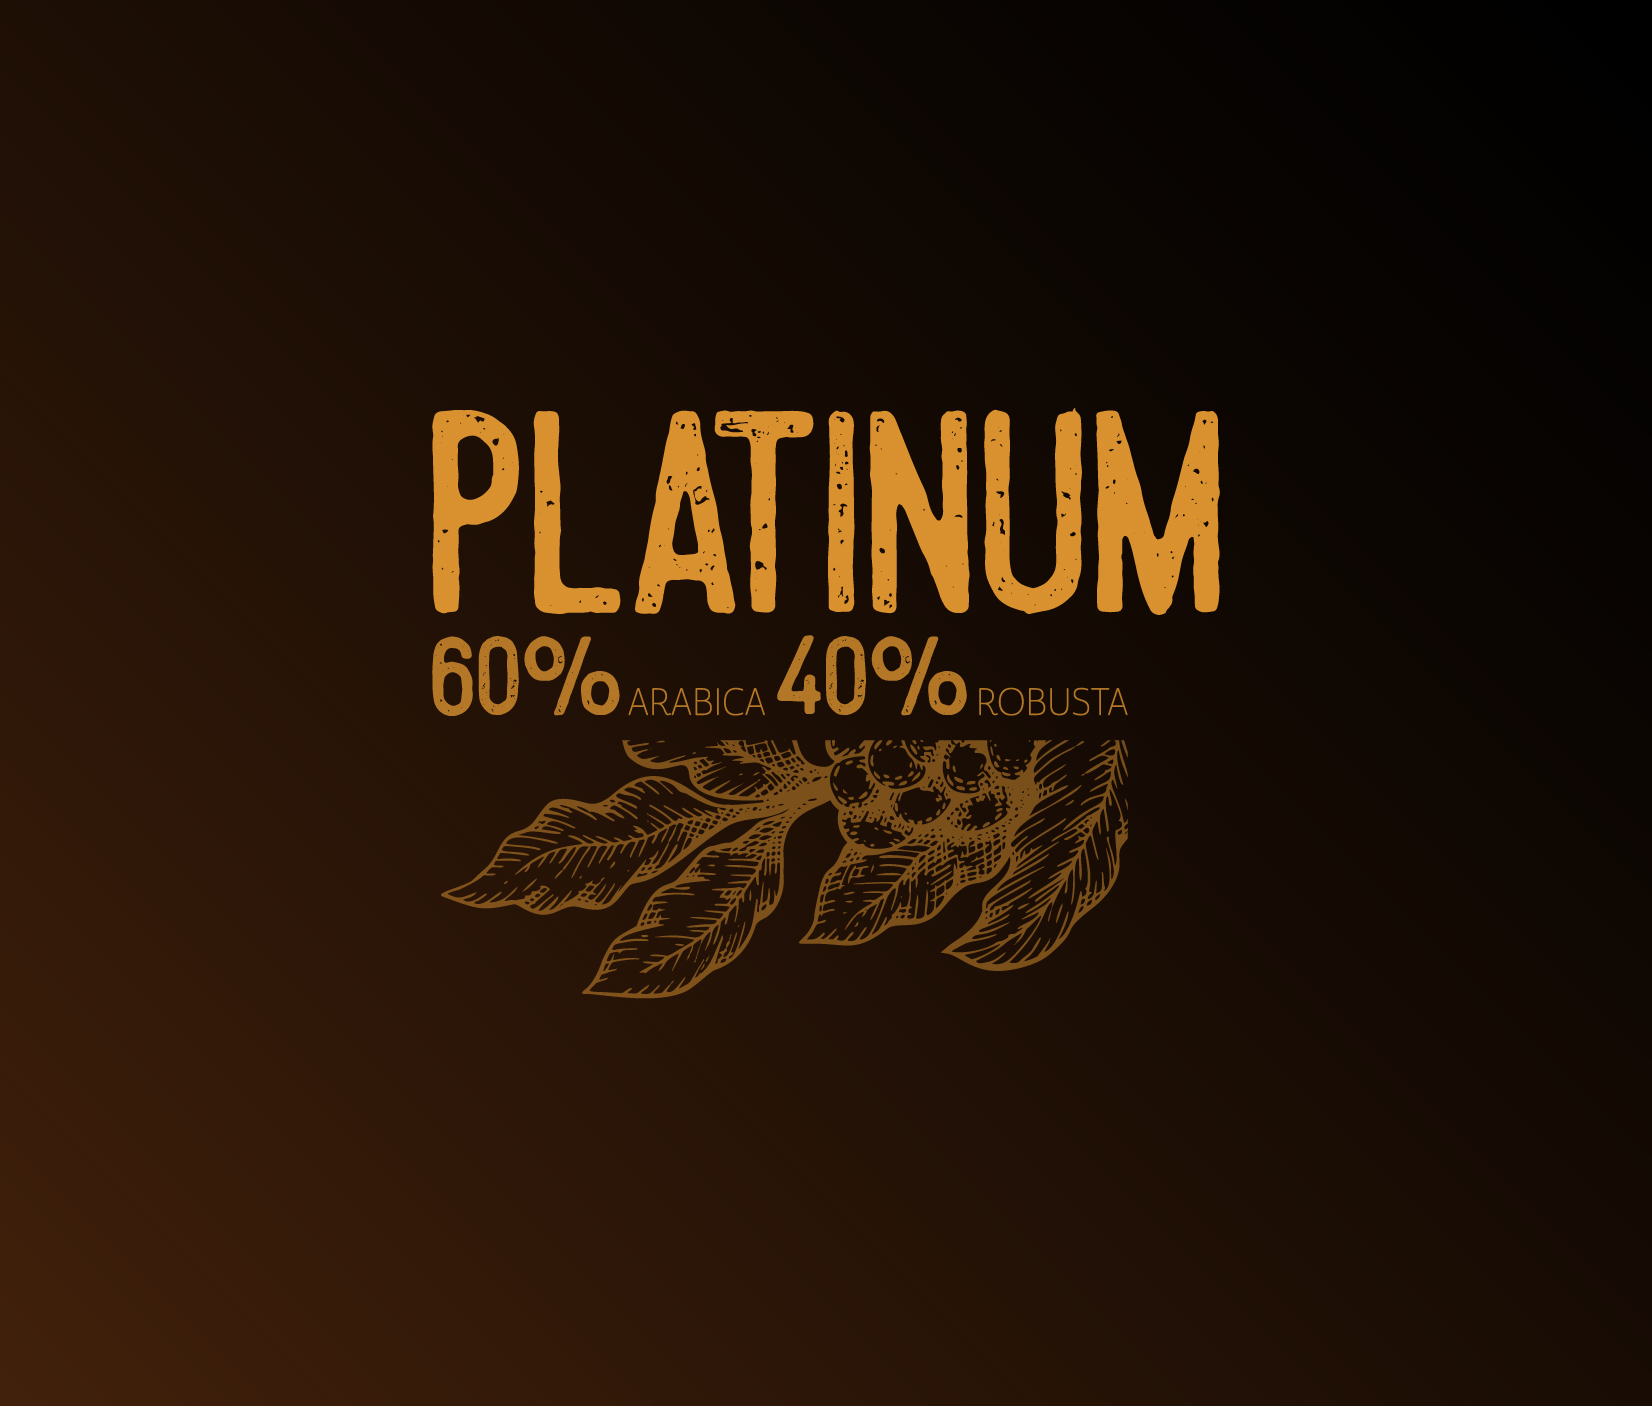 caffe_platinum copia@2x-100